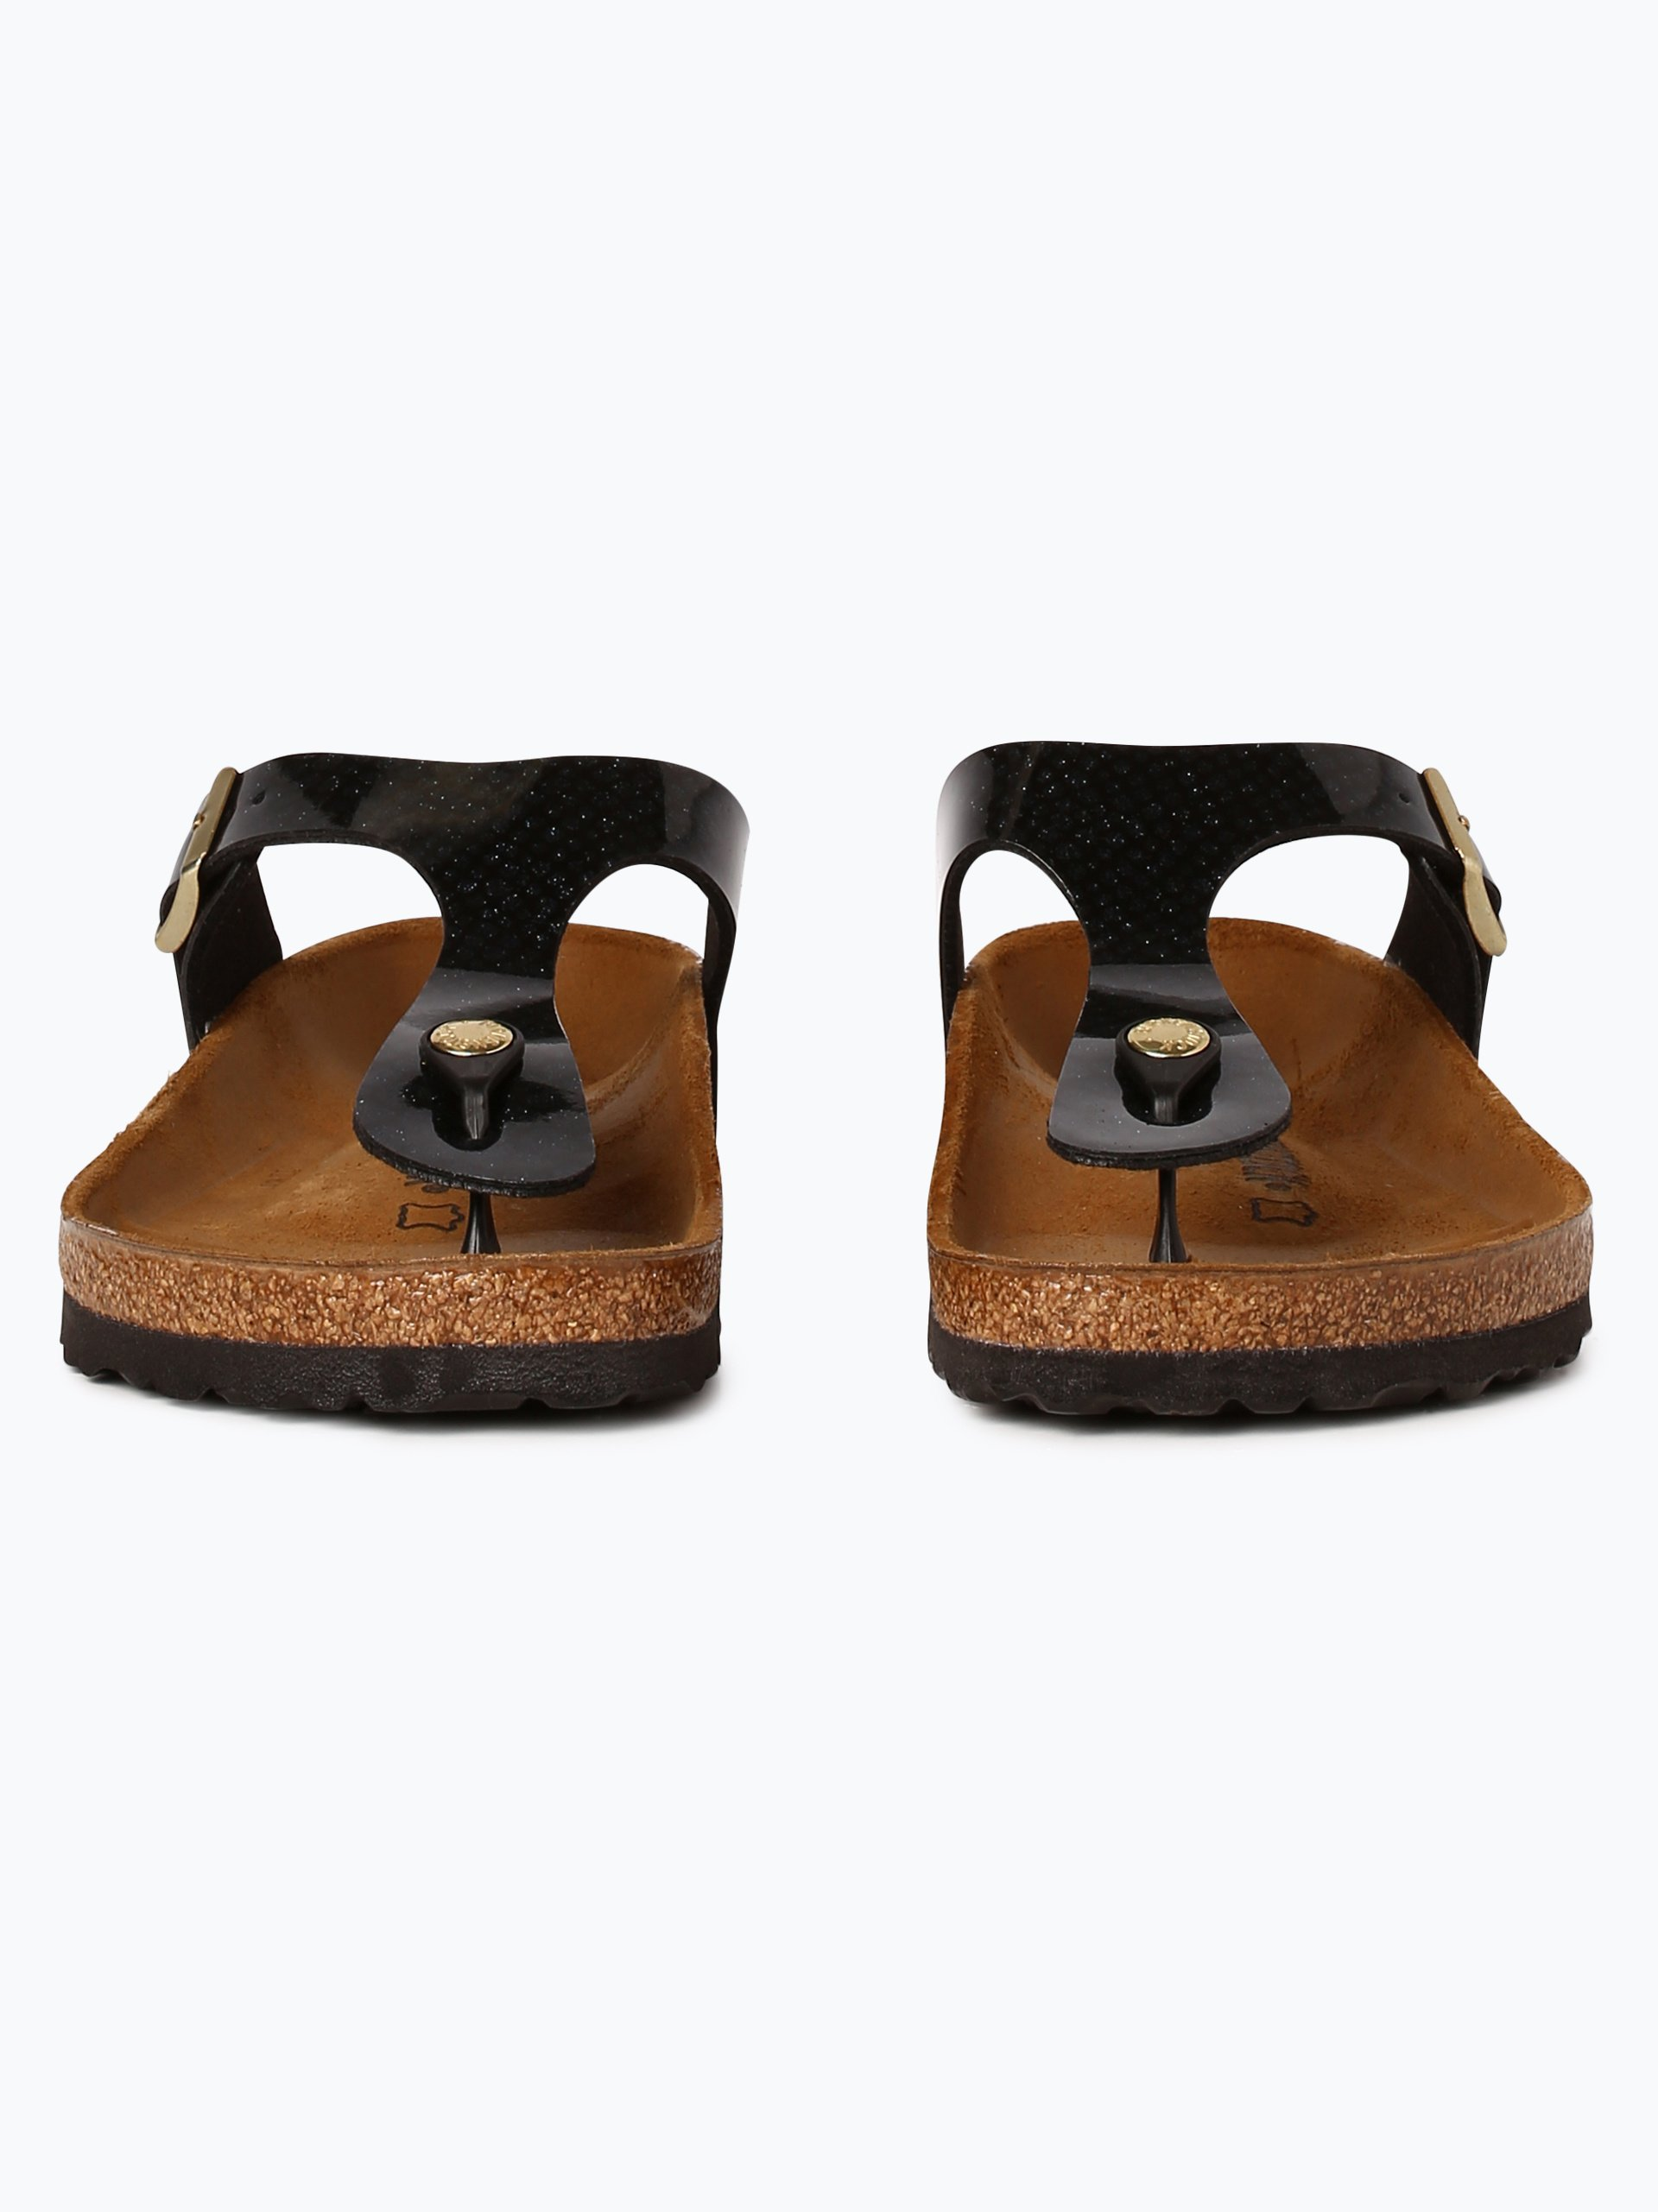 birkenstock damen sandalen mit leder anteil gizeh bs schwarz gemustert online kaufen peek. Black Bedroom Furniture Sets. Home Design Ideas